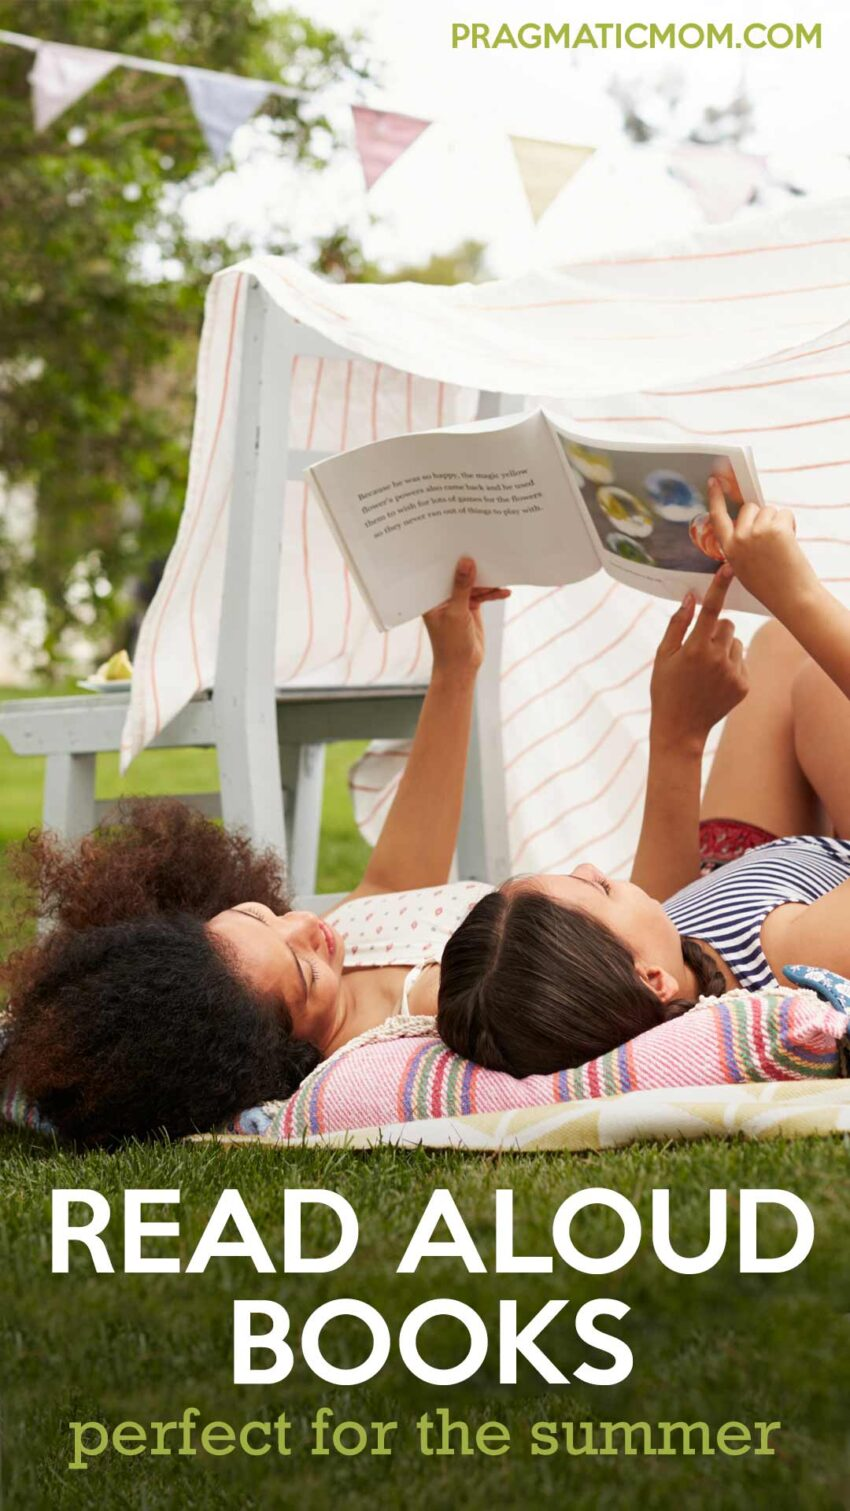 Read Aloud Books for Kids and Other Ideas For Summer Fun